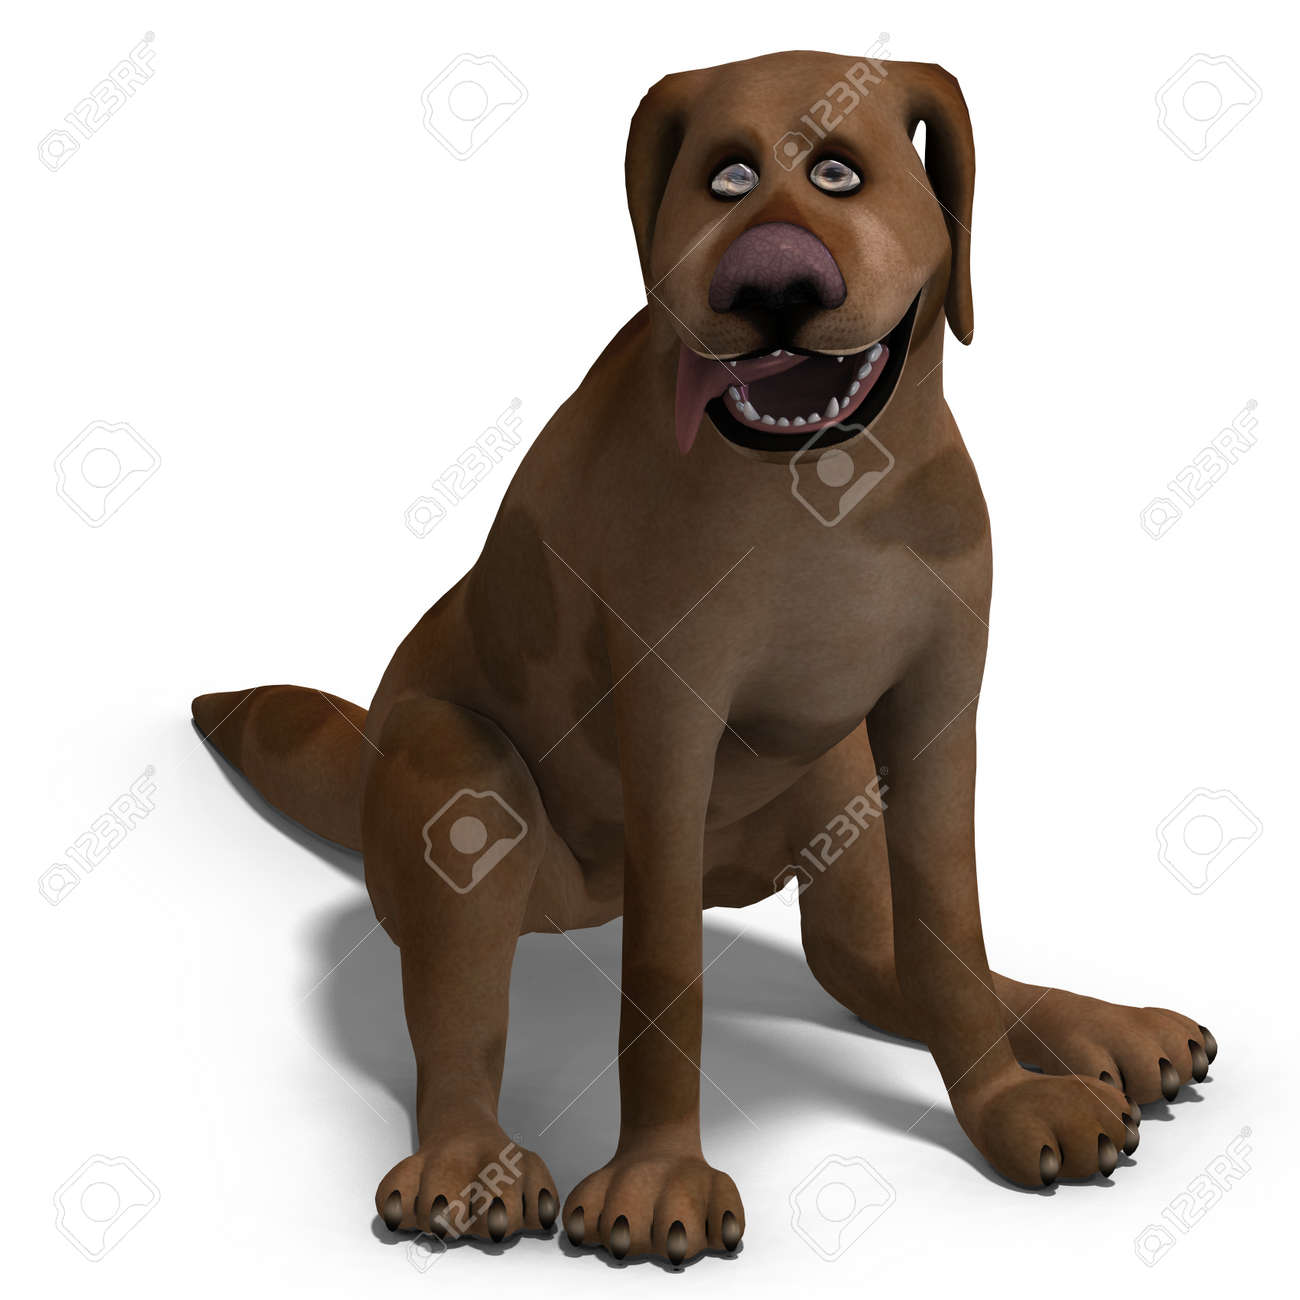 the cute and funny cartoon dog is a bit silly. 3D rendering Stock Photo - 8687000